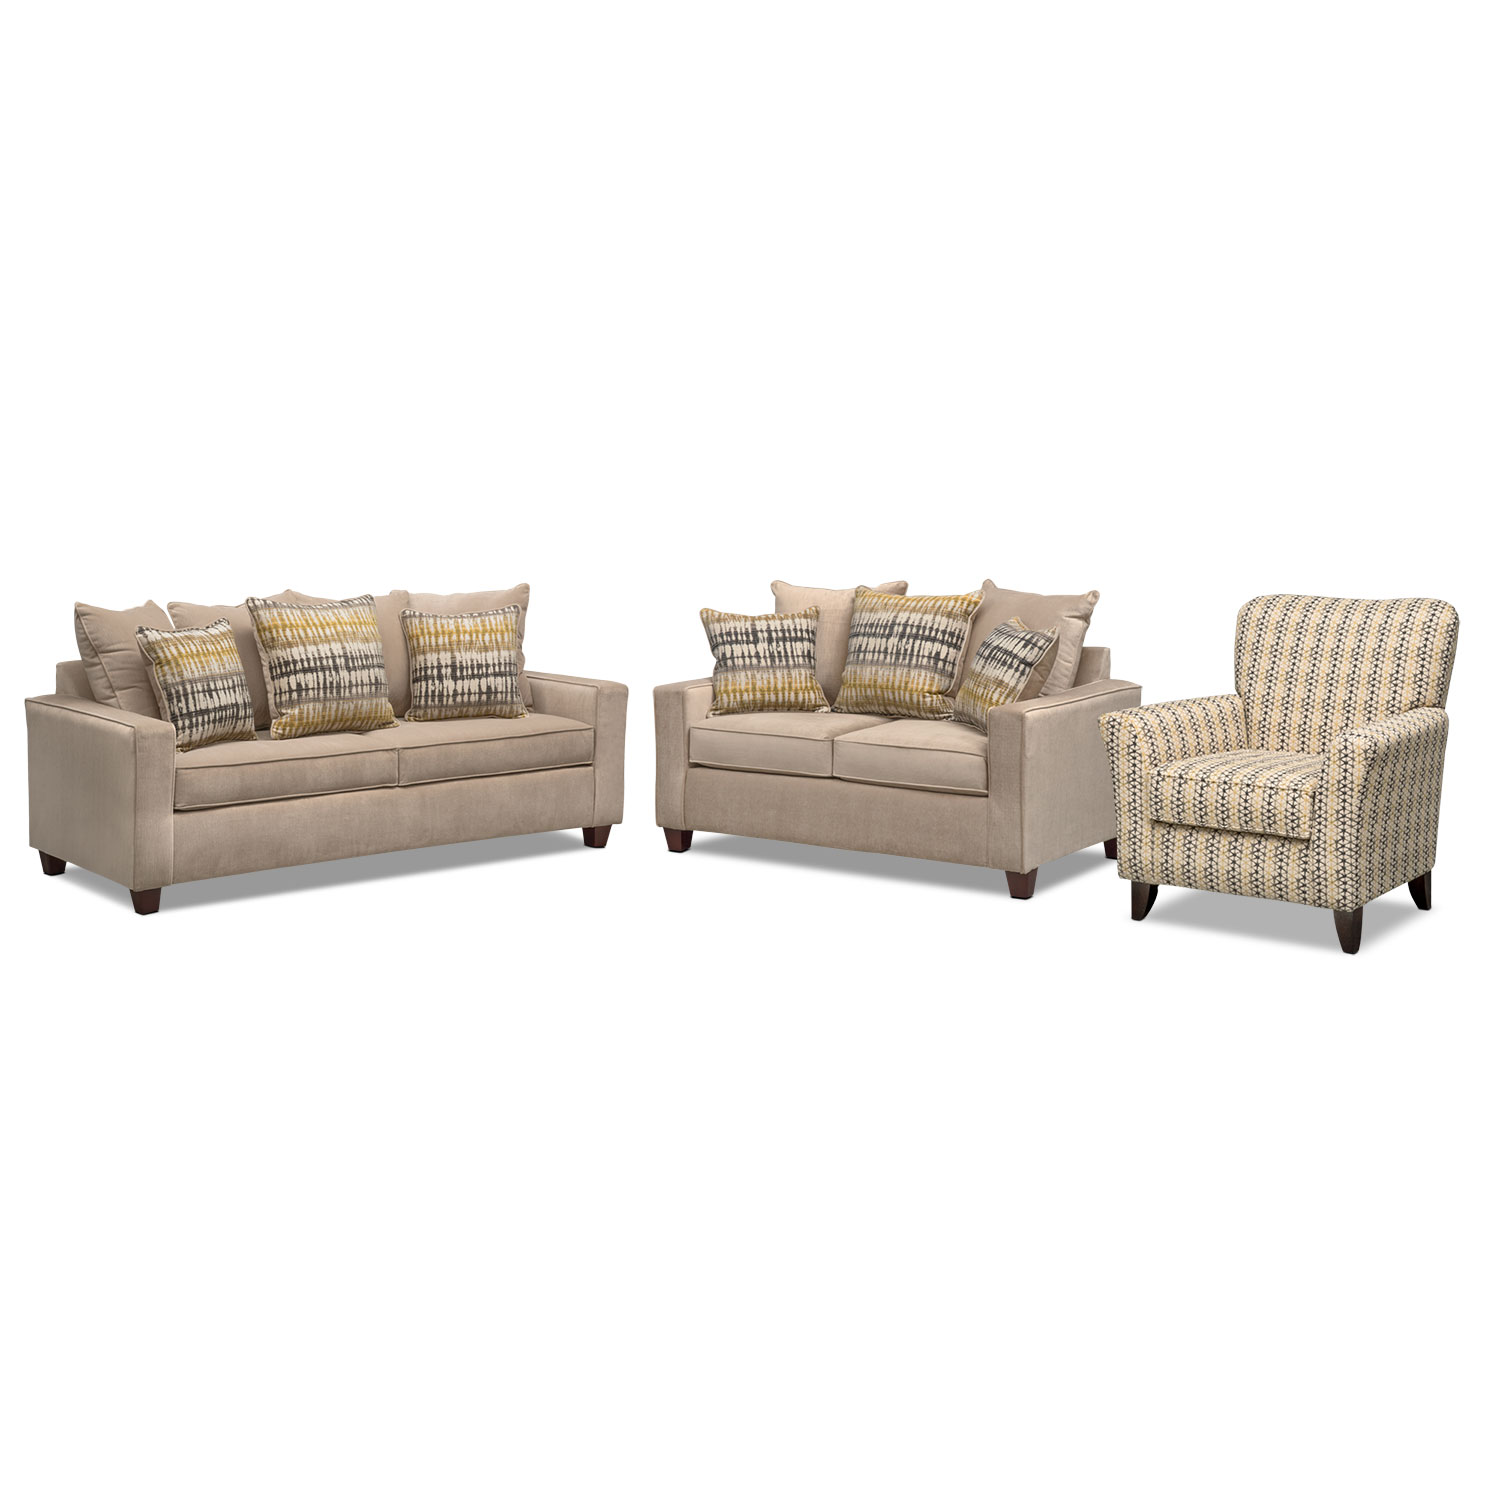 bryden sofa loveseat and accent chair set american signature with table beach house furnishings hampton bay wicker cover factory coffee tray pottery barn small outdoor storage box